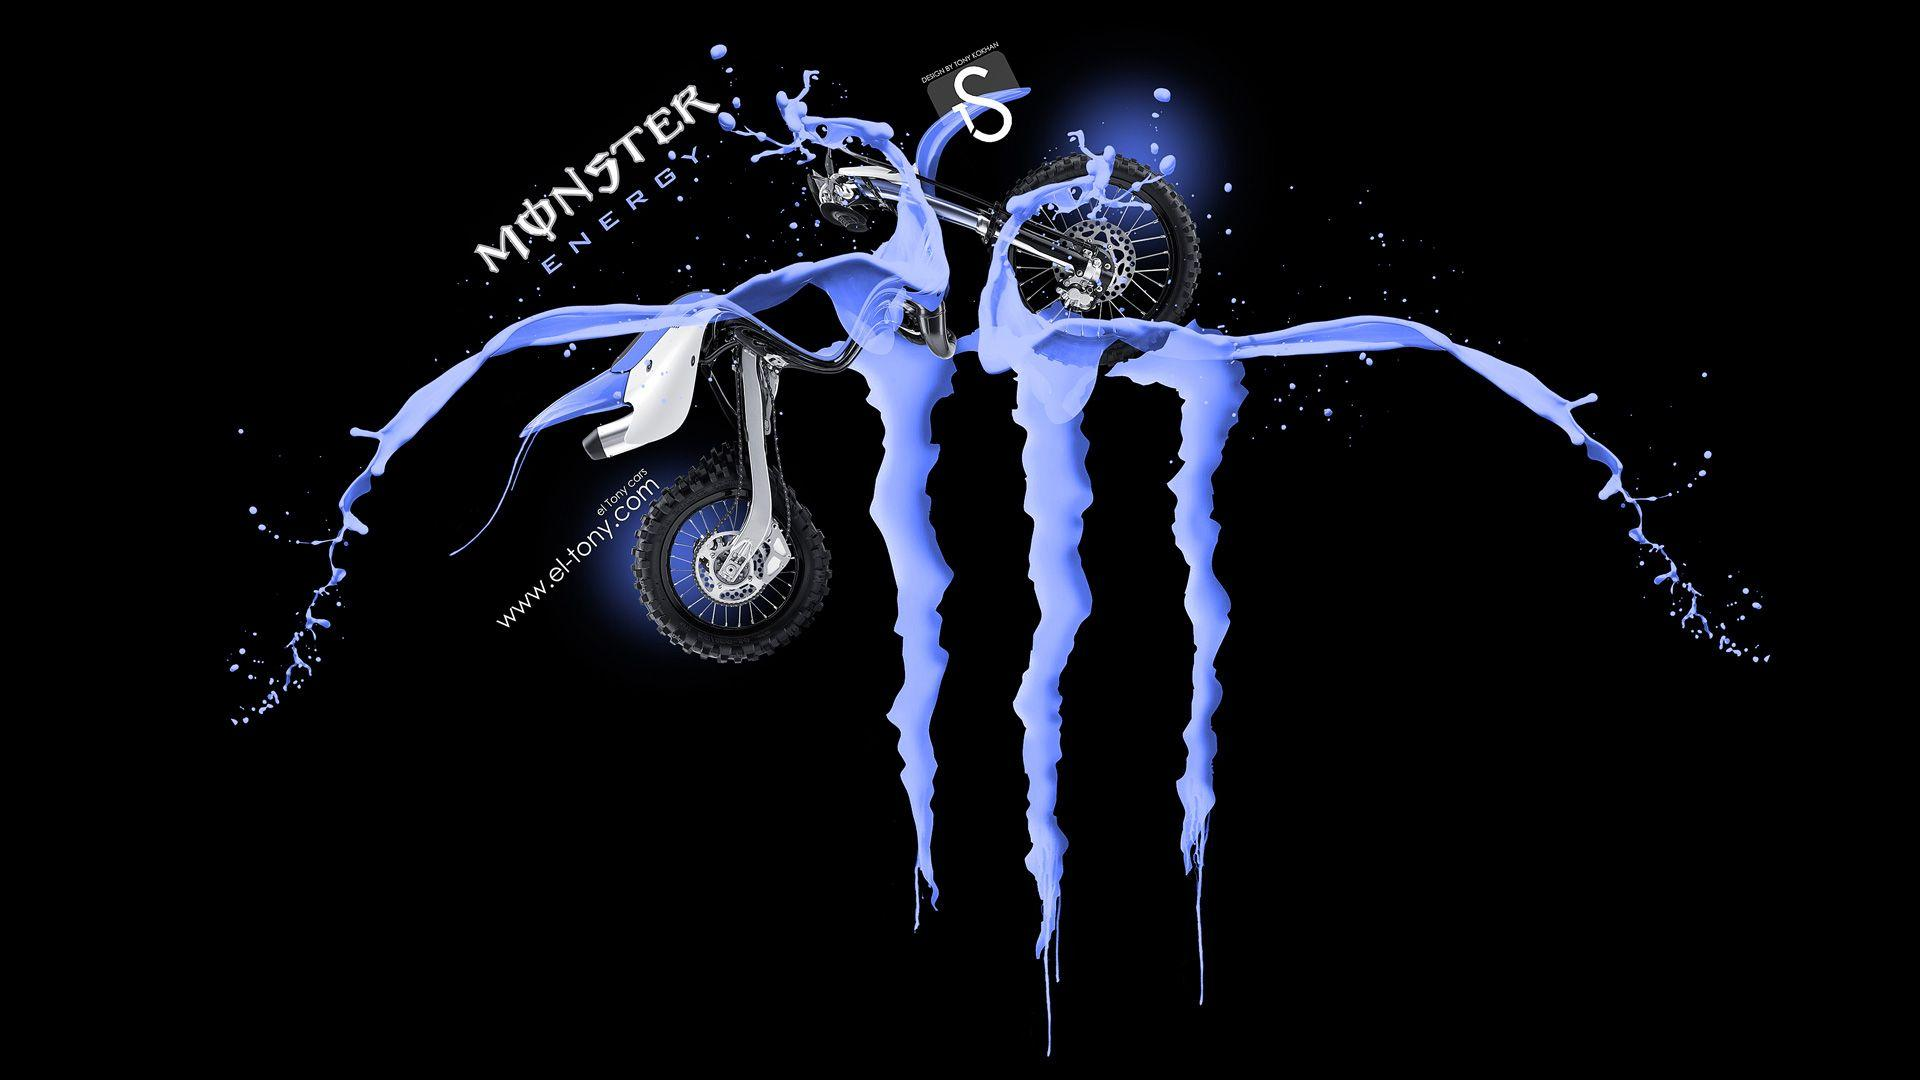 Monster Energy Logo Backgrounds - Wallpaper Cave